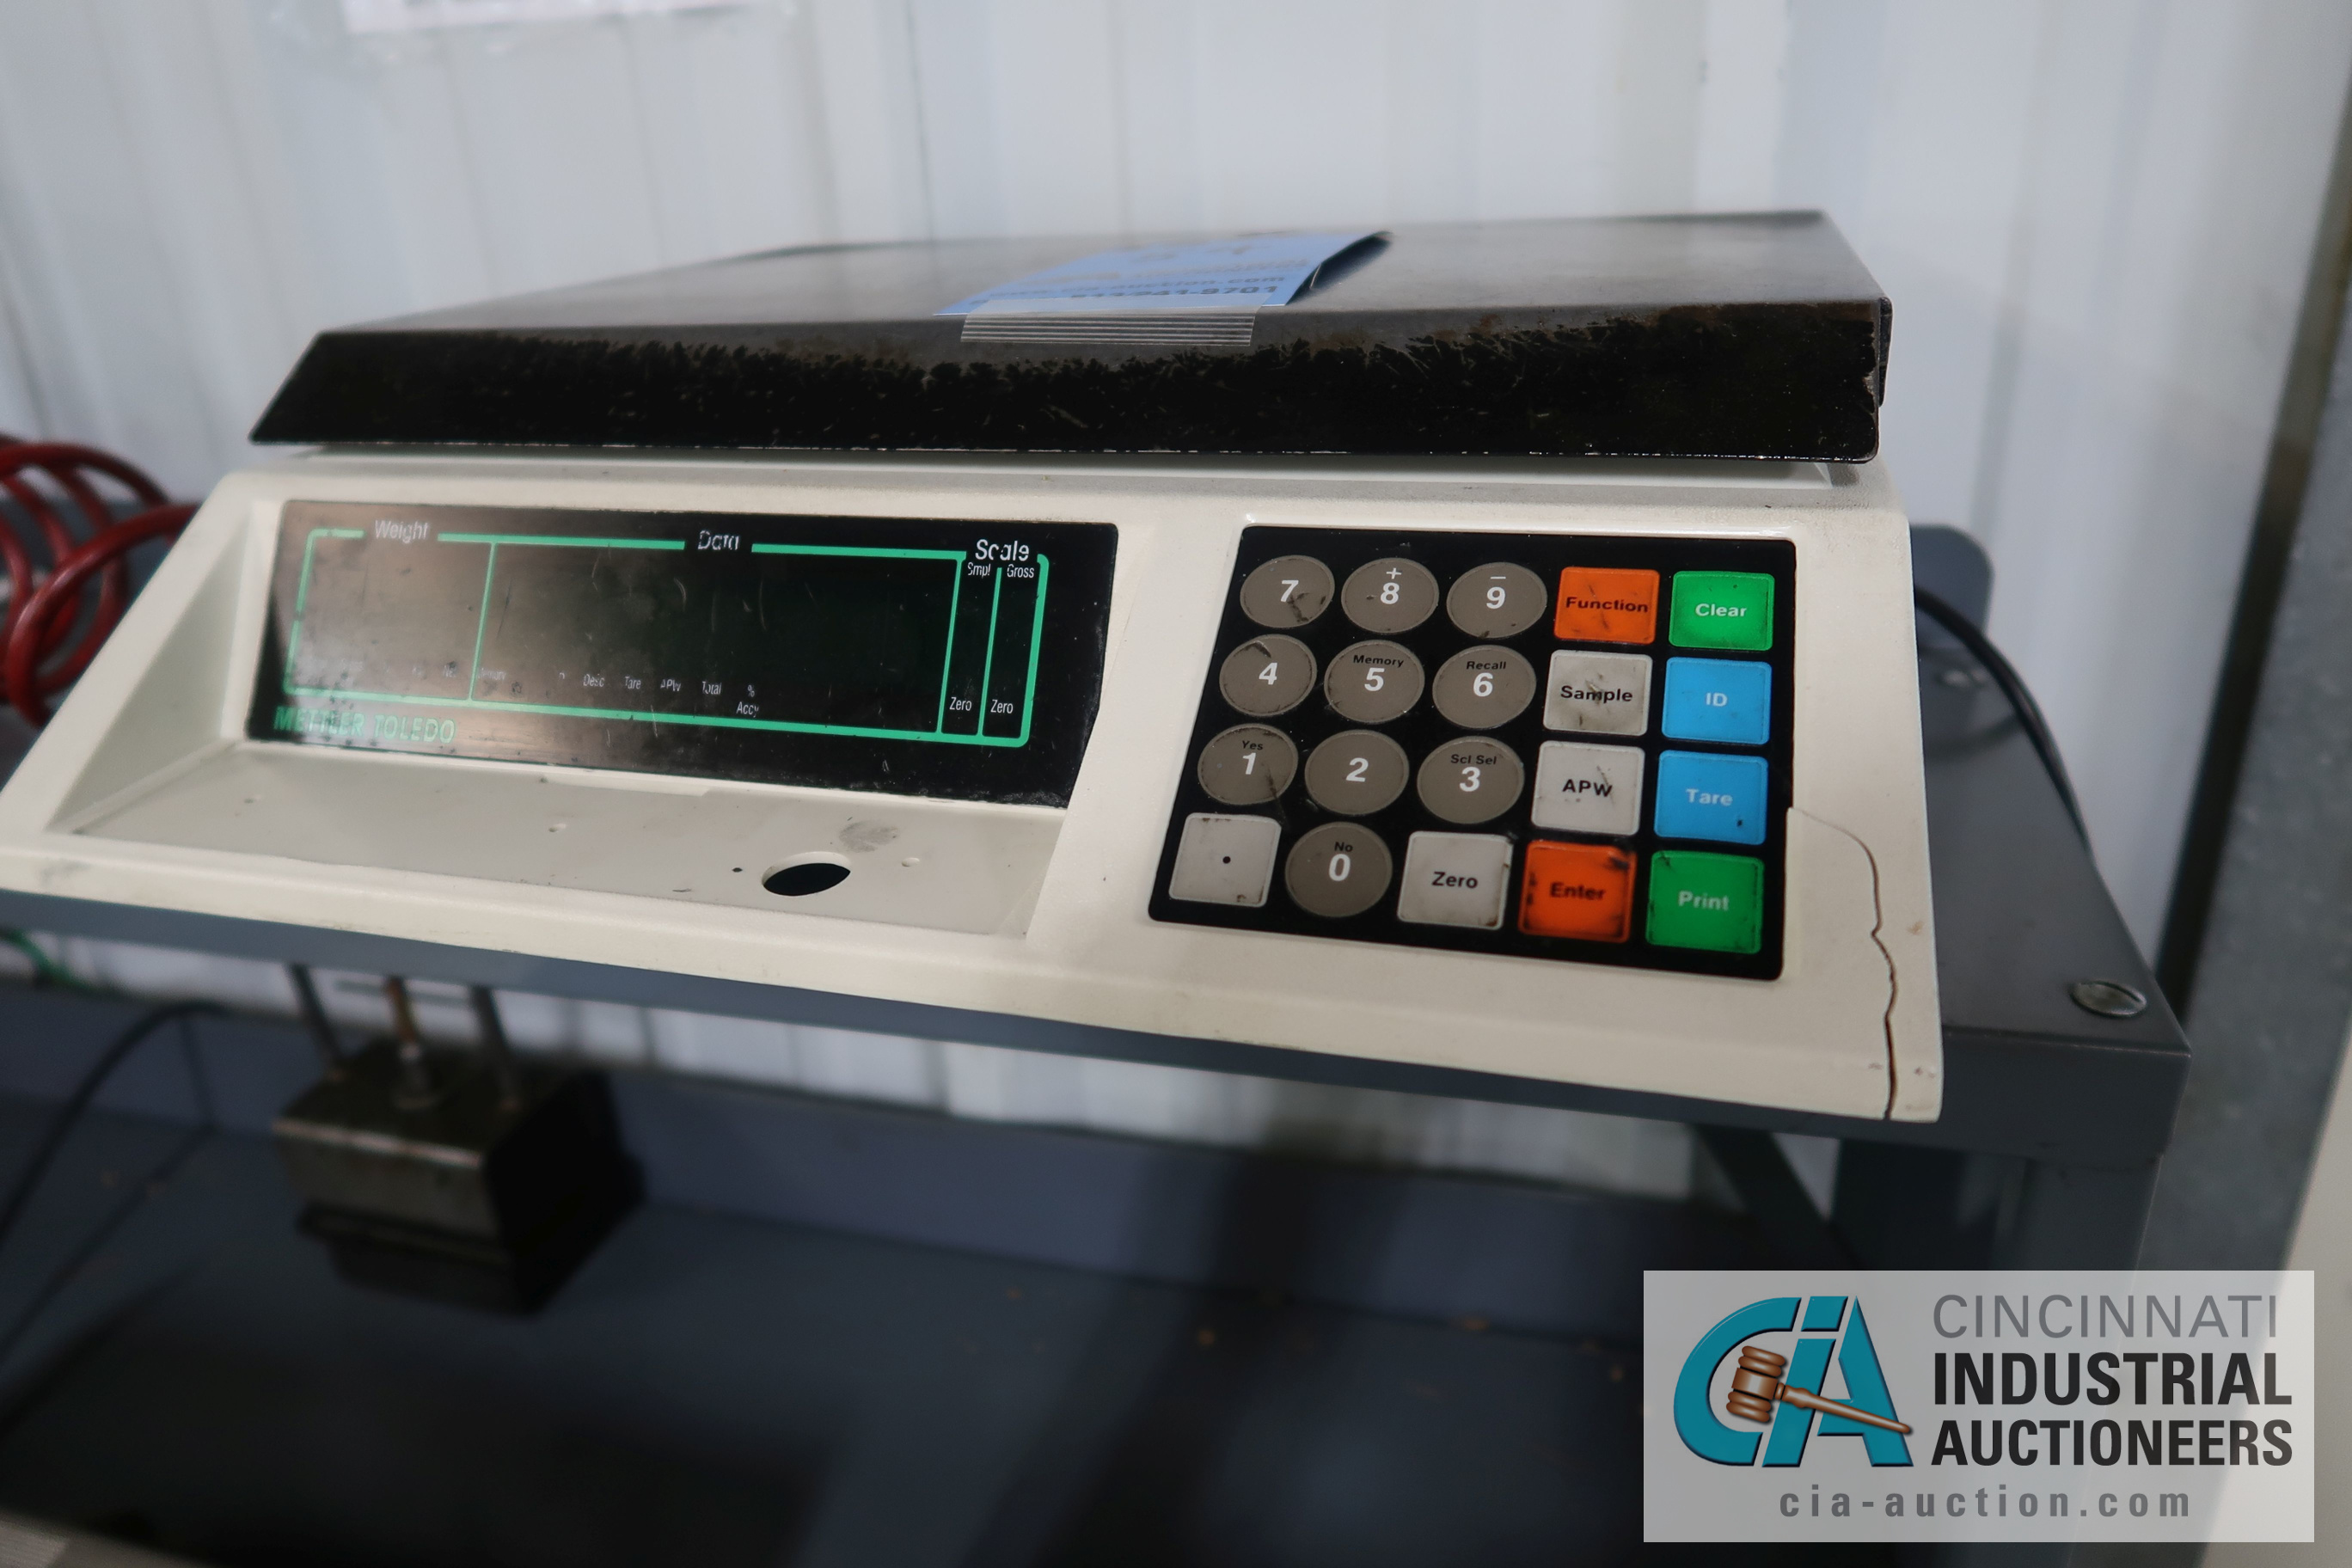 100 LB. CAPACITY METTLER-TOLEDO MODEL 8582 COUNTING SCALES WITH (1) 65 LB. CAPACITY ULINE MODEL H-